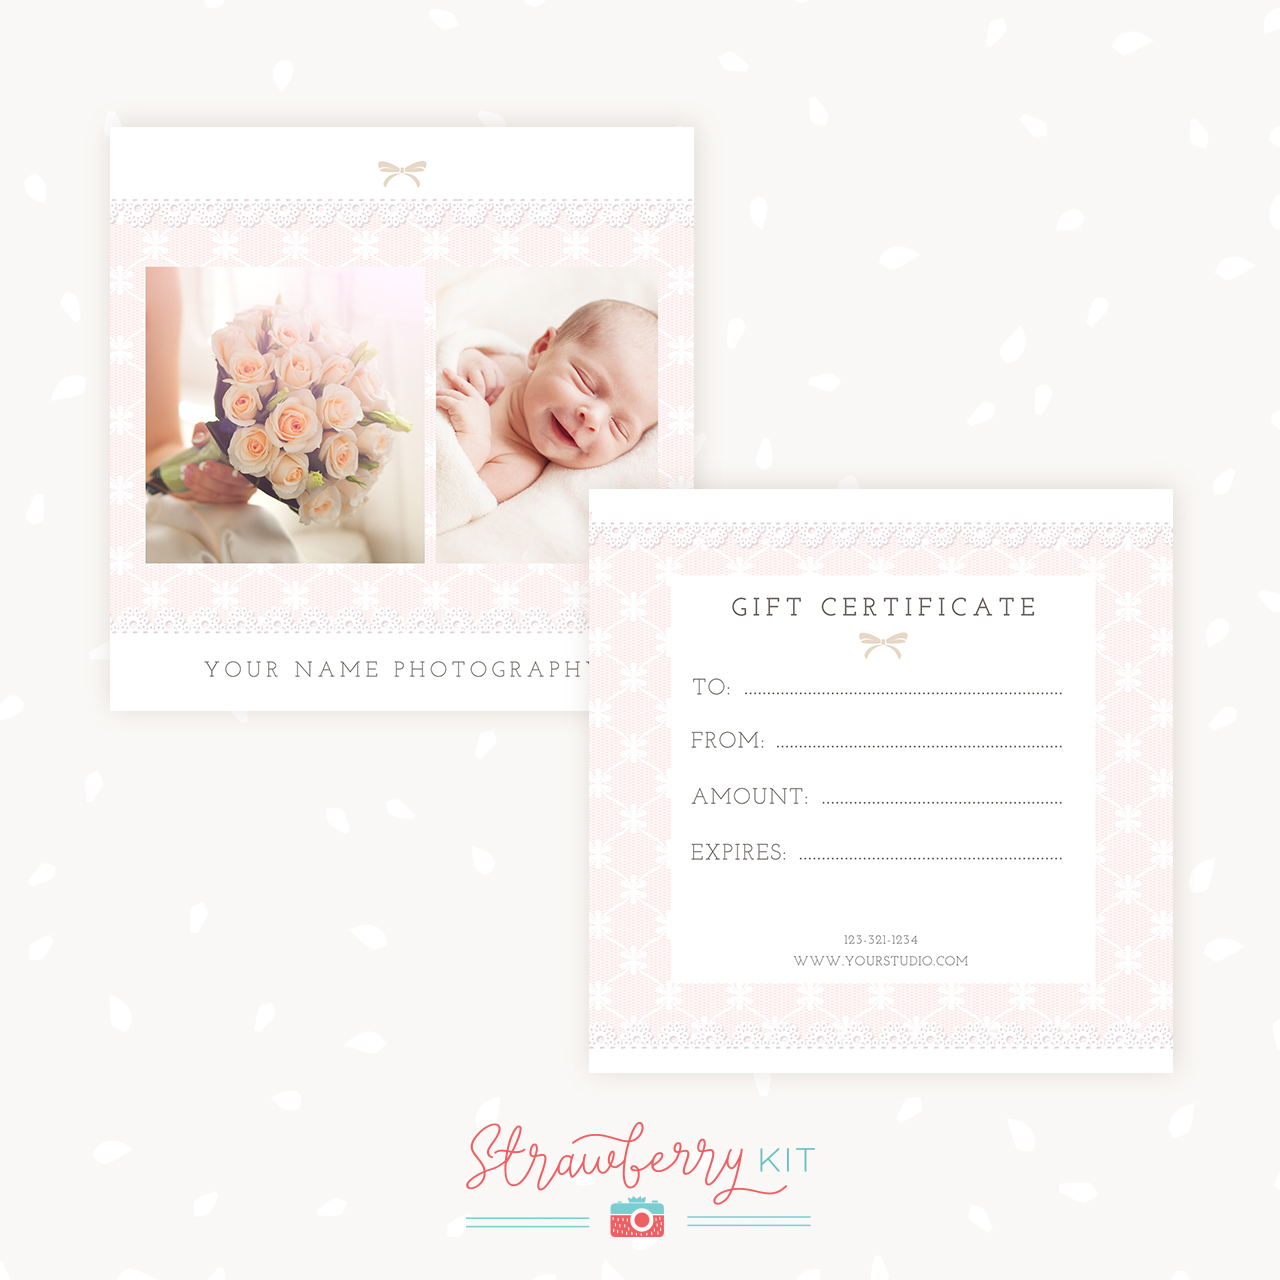 Lace Gift Certificate Template